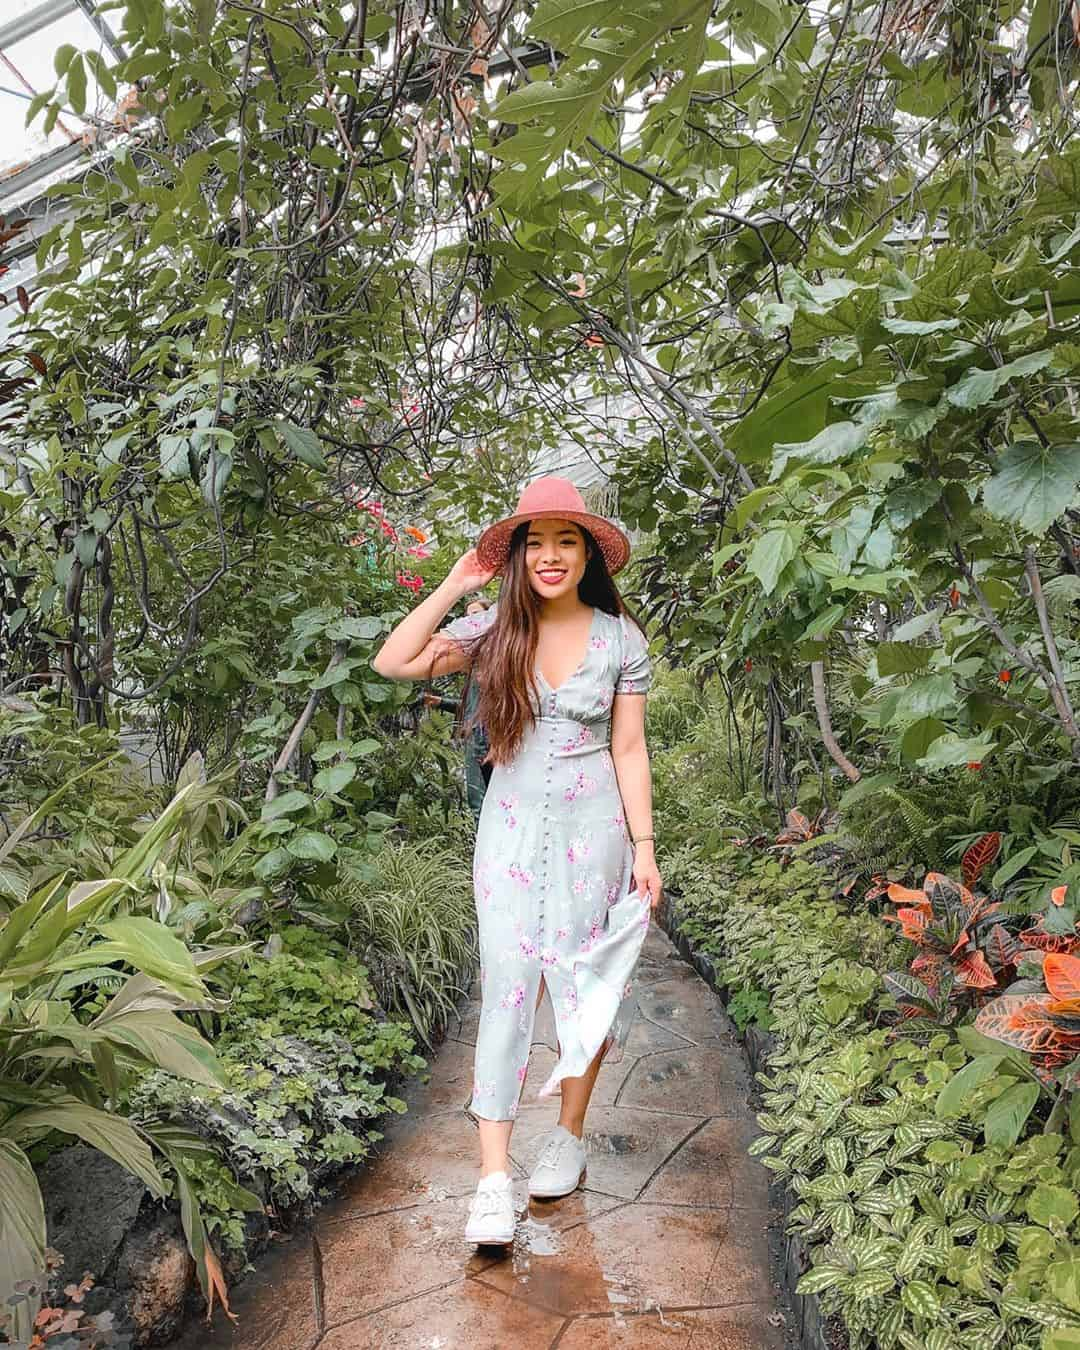 Wearing Ever New Melbourne summer dress at Allan Gardens Conservatory in Toronto, Canada